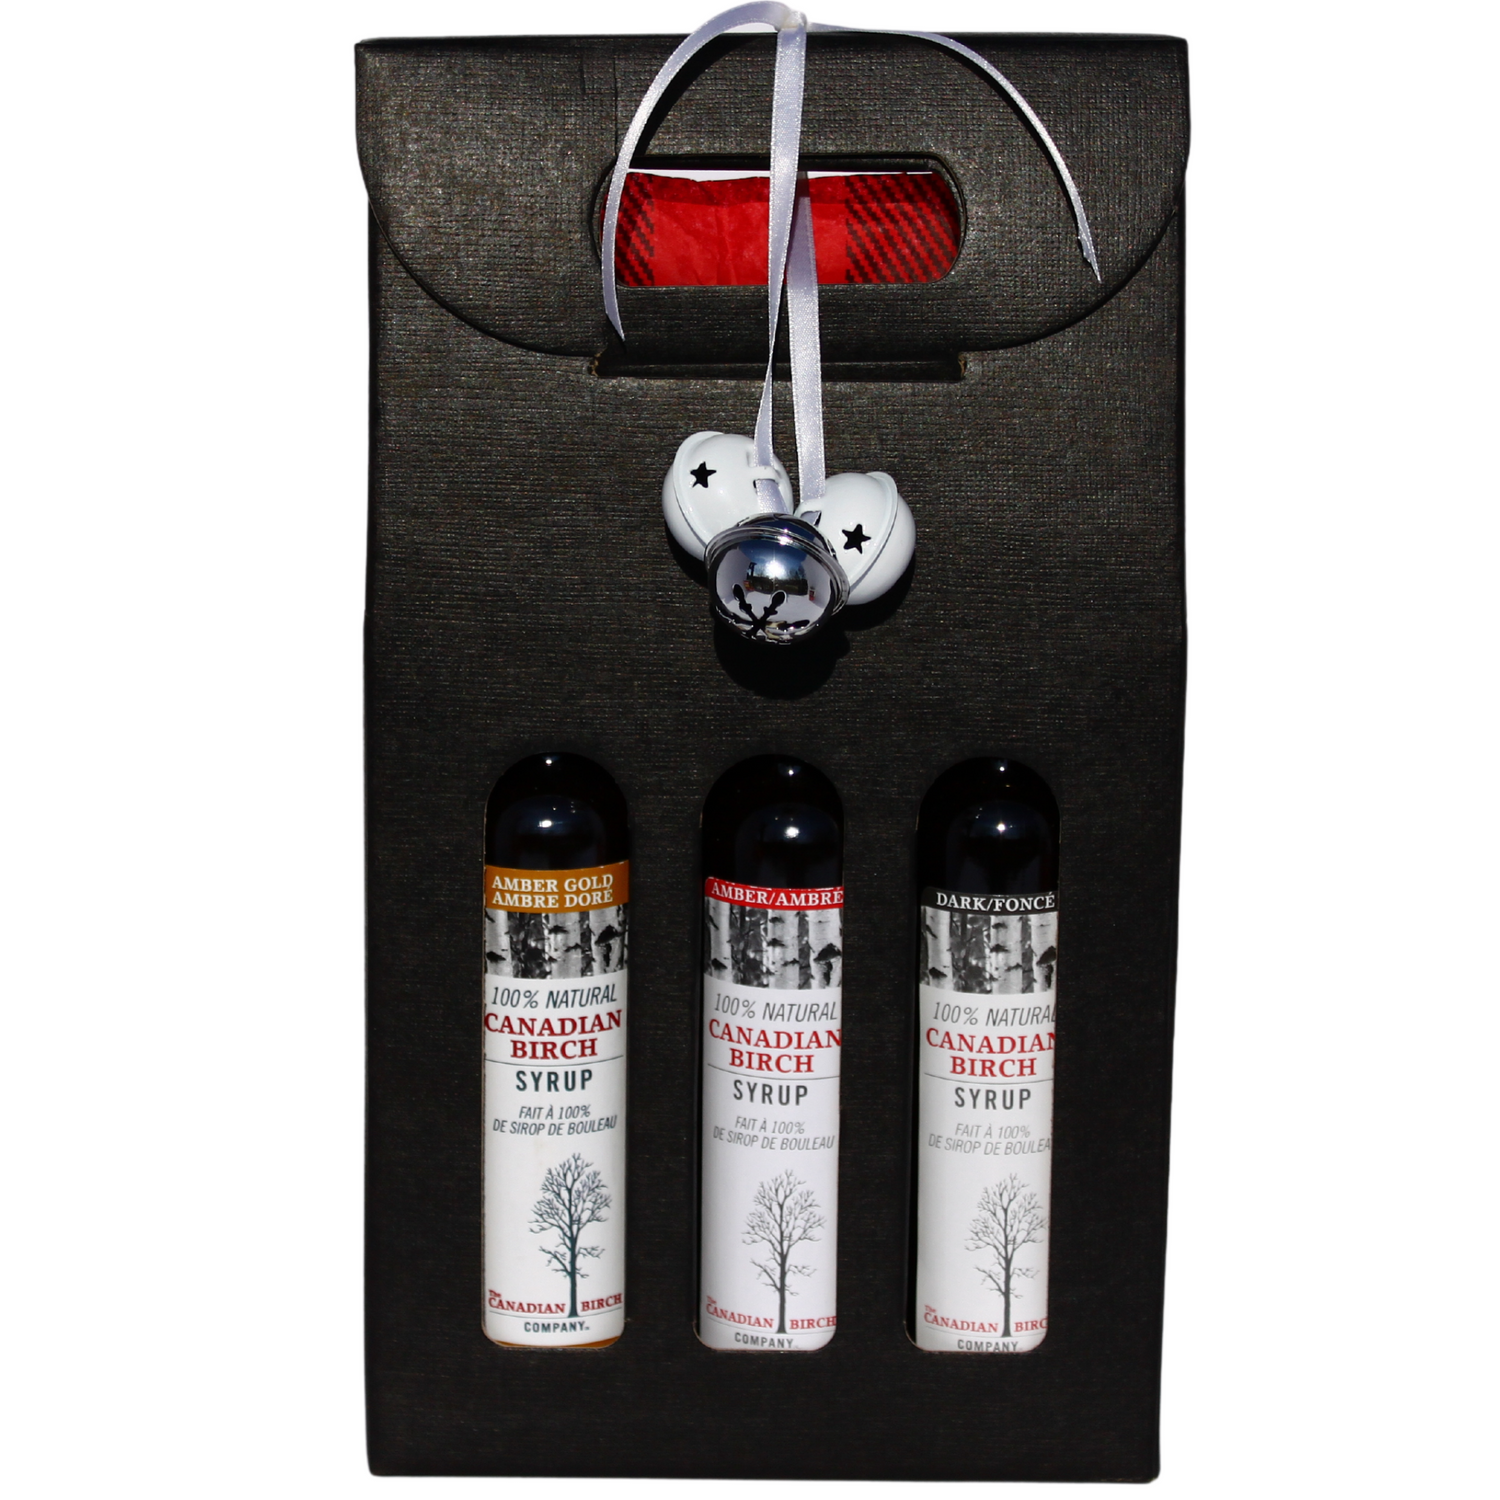 Premium paper tall window box in black housing 3 birch syrups, one each of dark, amber and gold 100 ml full size bottles